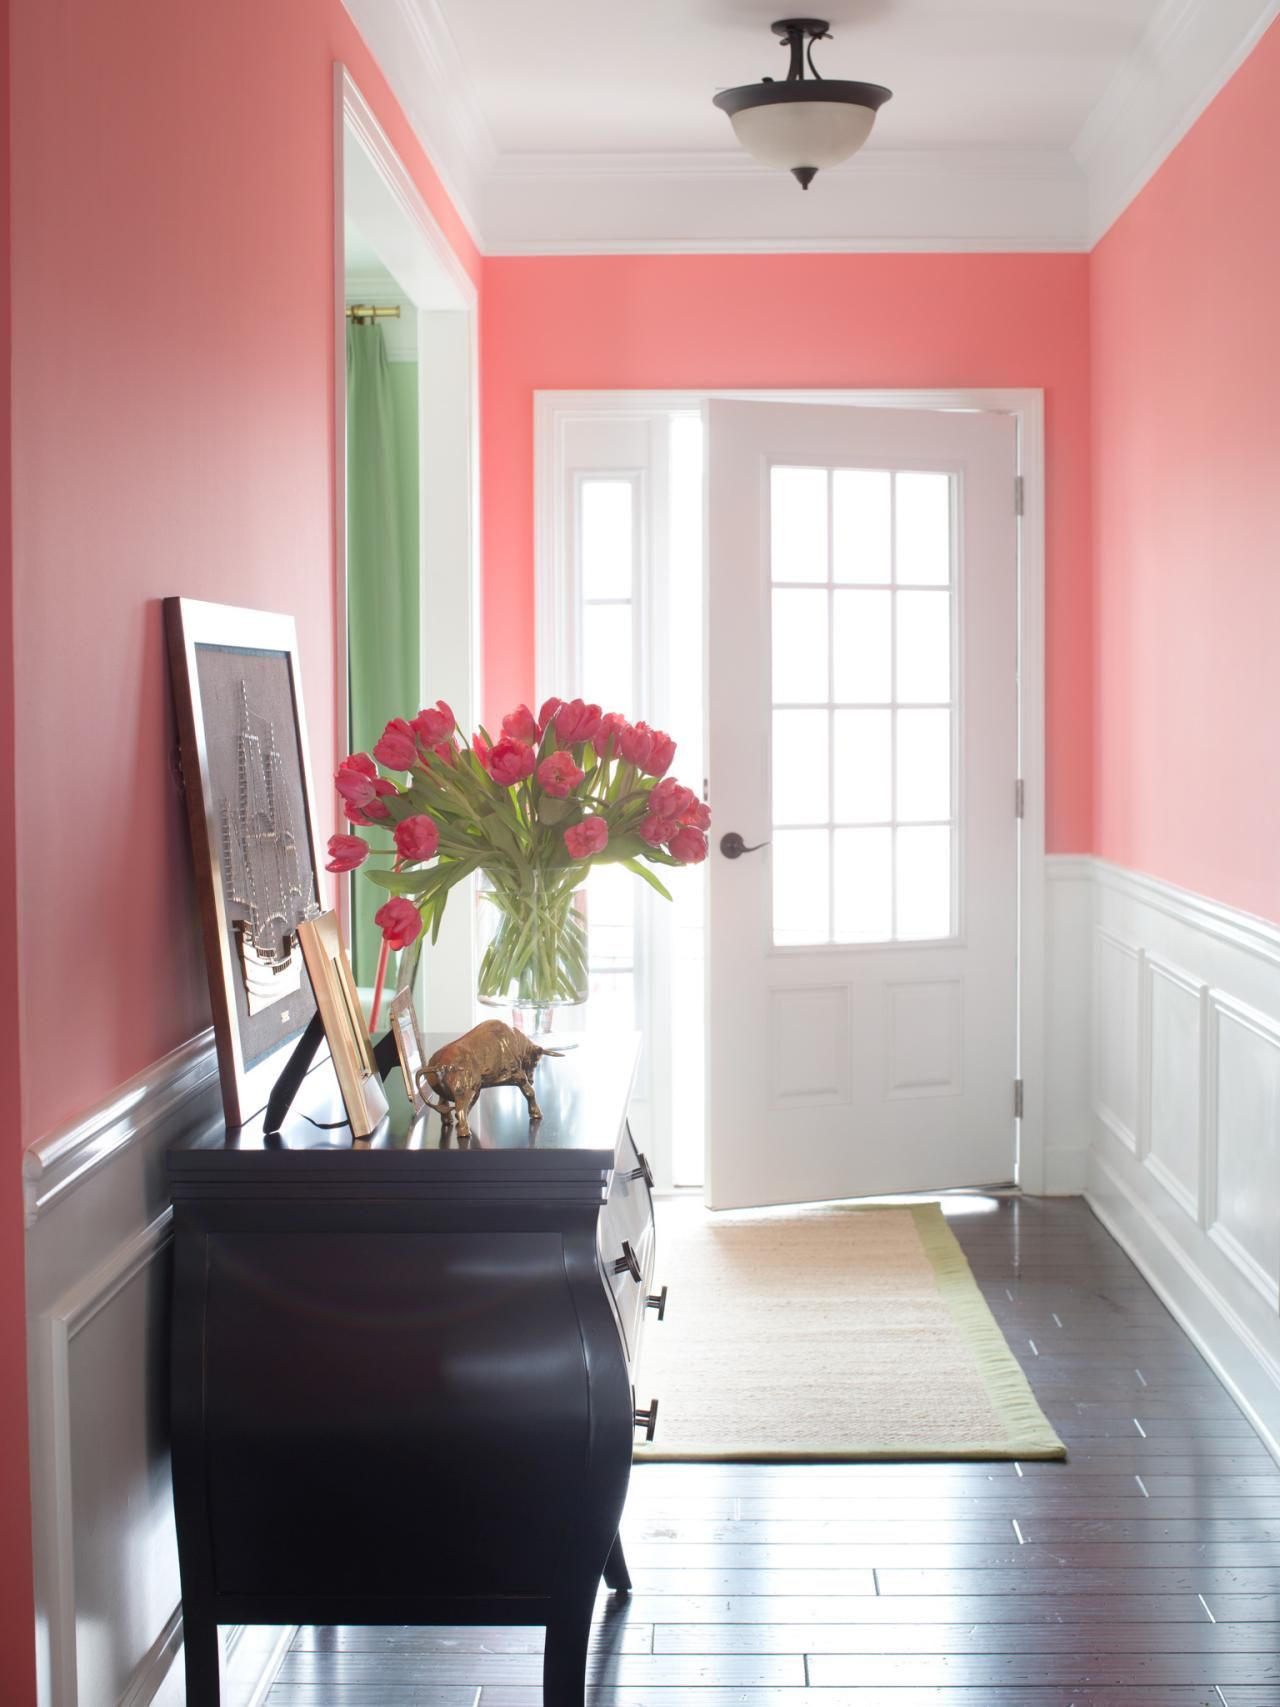 Pops of pink in every room yes for The floor decor